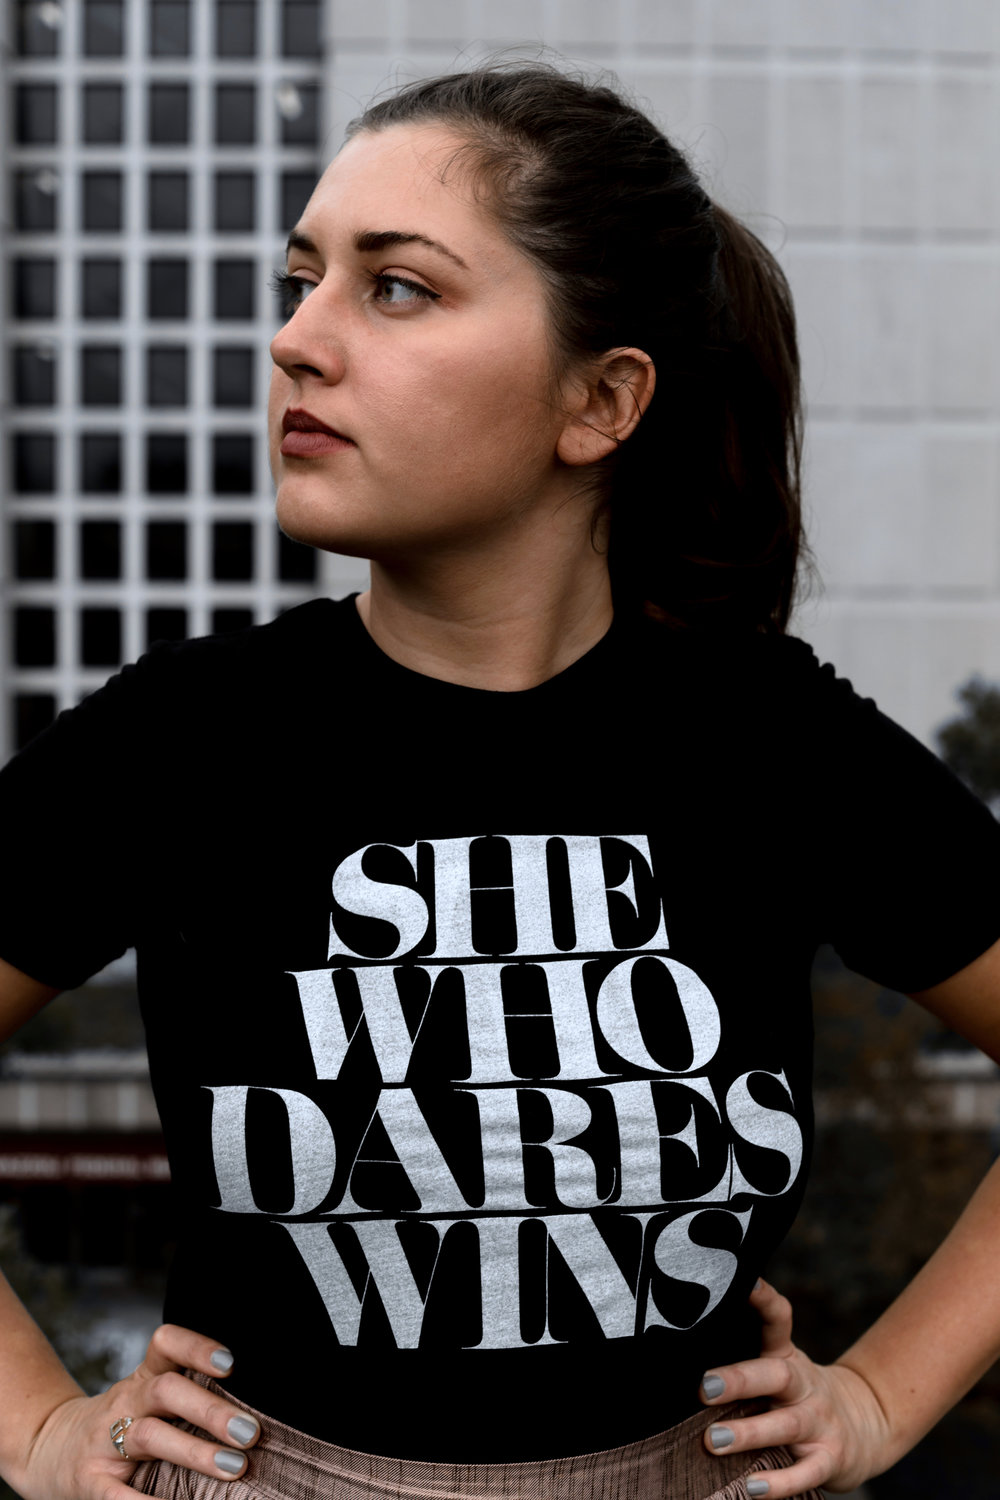 She Who Dares Wins Top, reviewed by Malina.